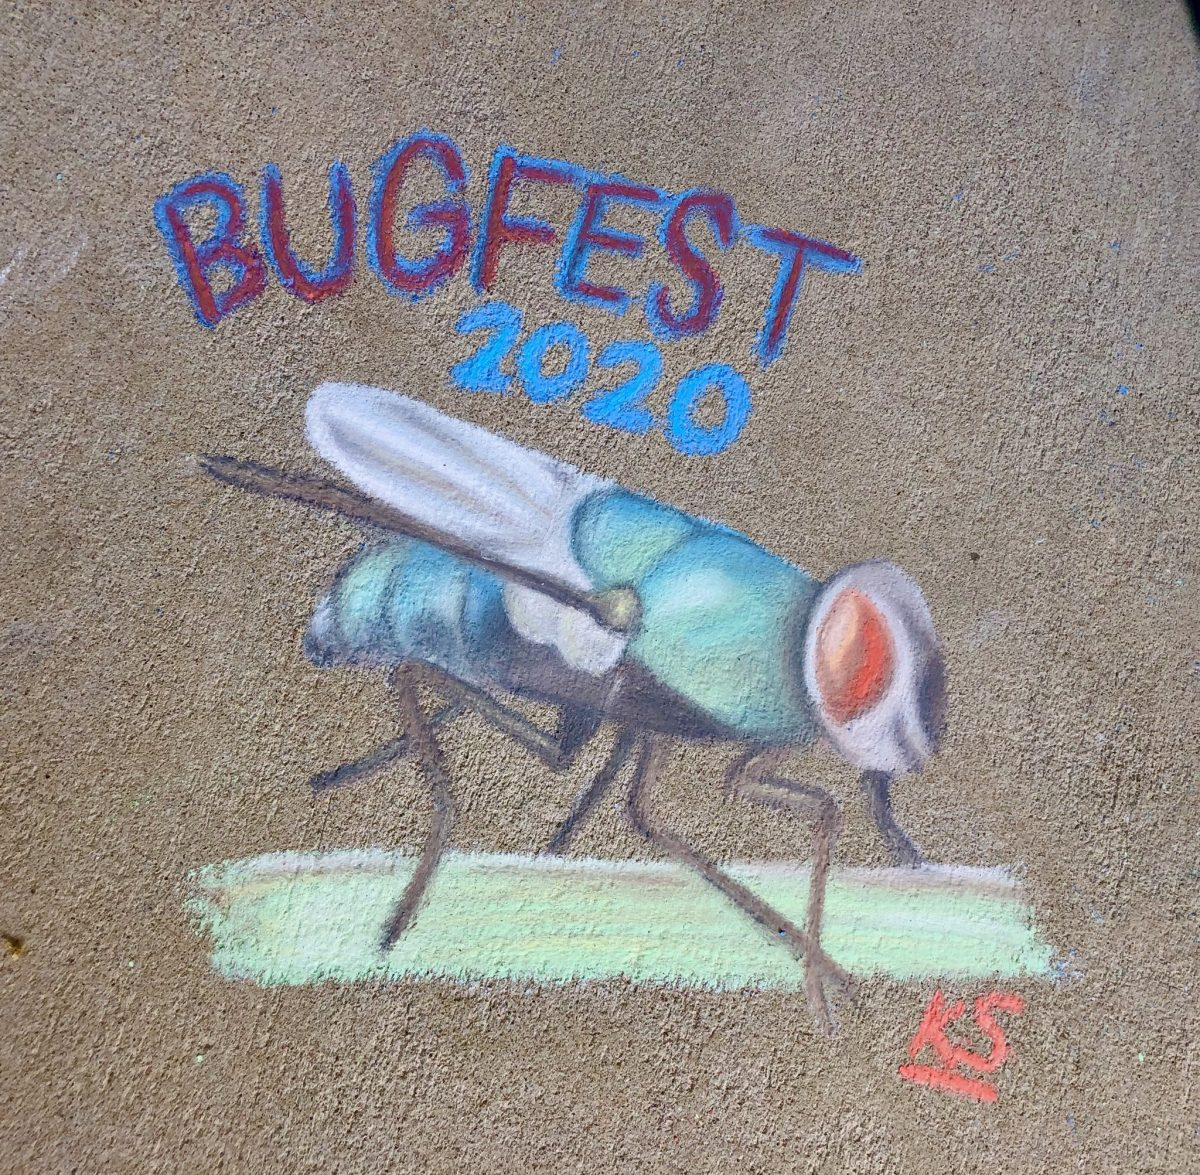 A detailed BugFest fly in chalk